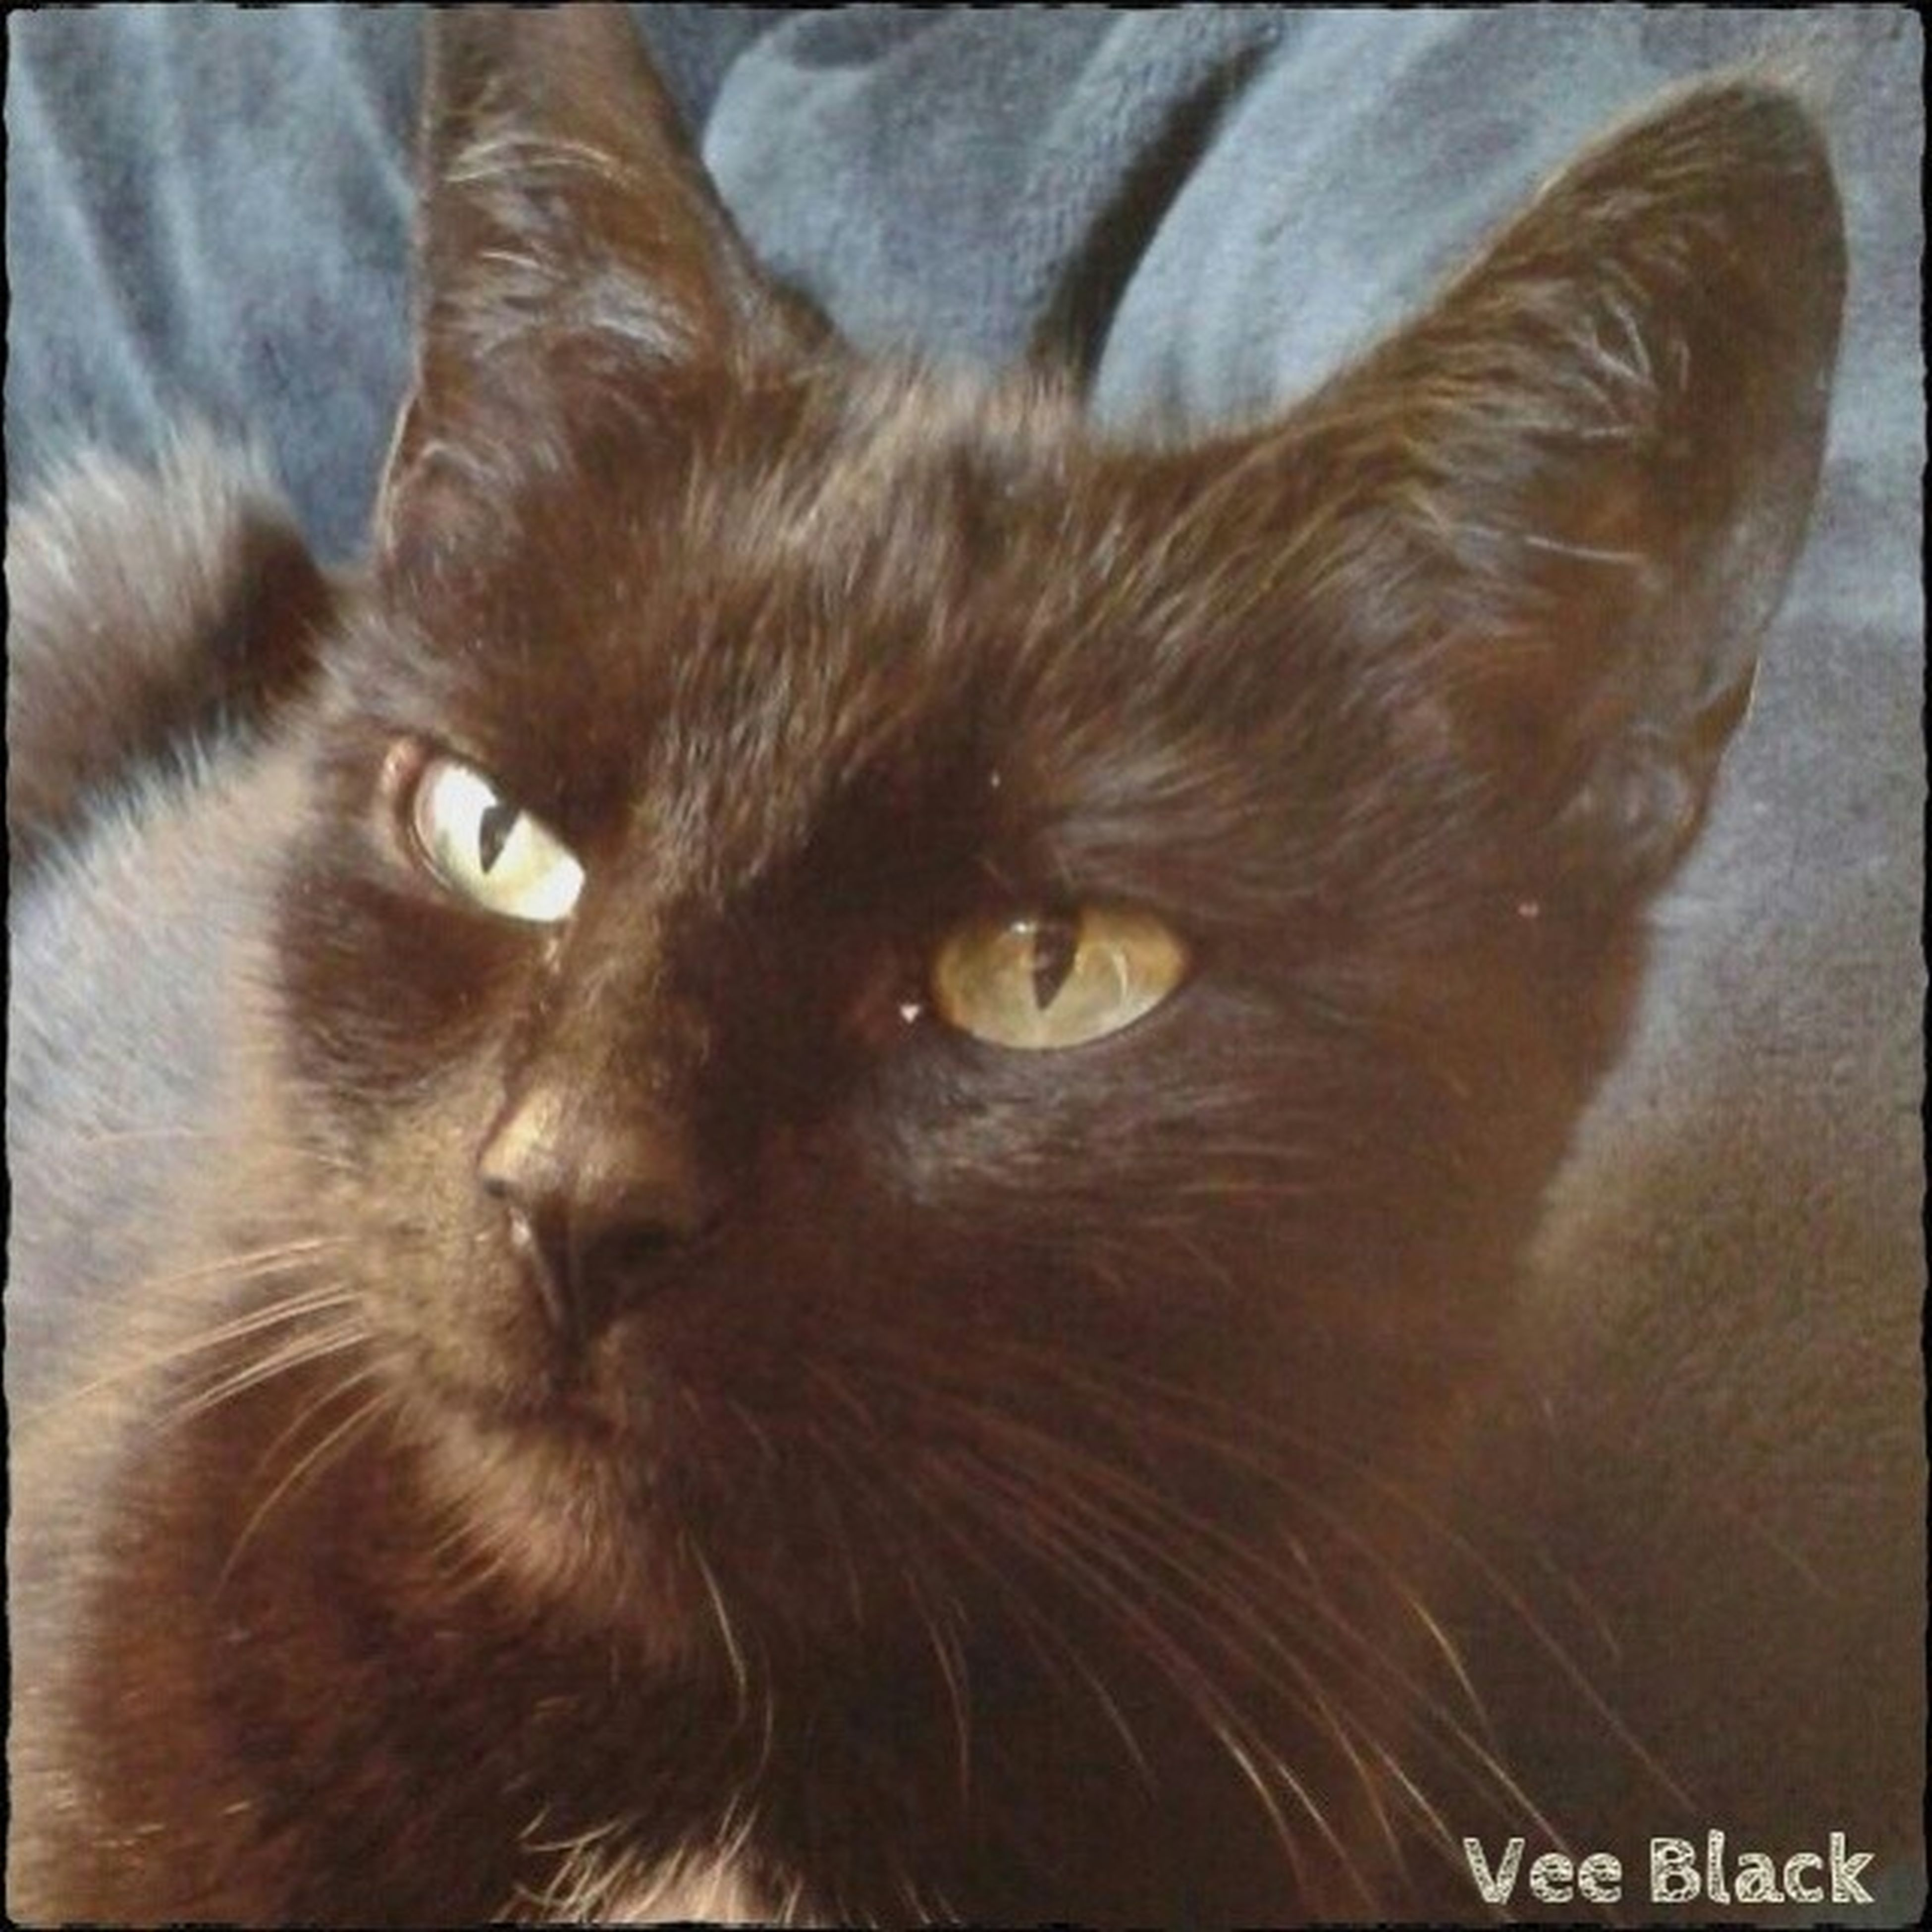 pets, domestic animals, domestic cat, animal themes, one animal, cat, mammal, indoors, feline, whisker, looking at camera, close-up, portrait, animal head, animal eye, staring, alertness, black color, animal body part, no people